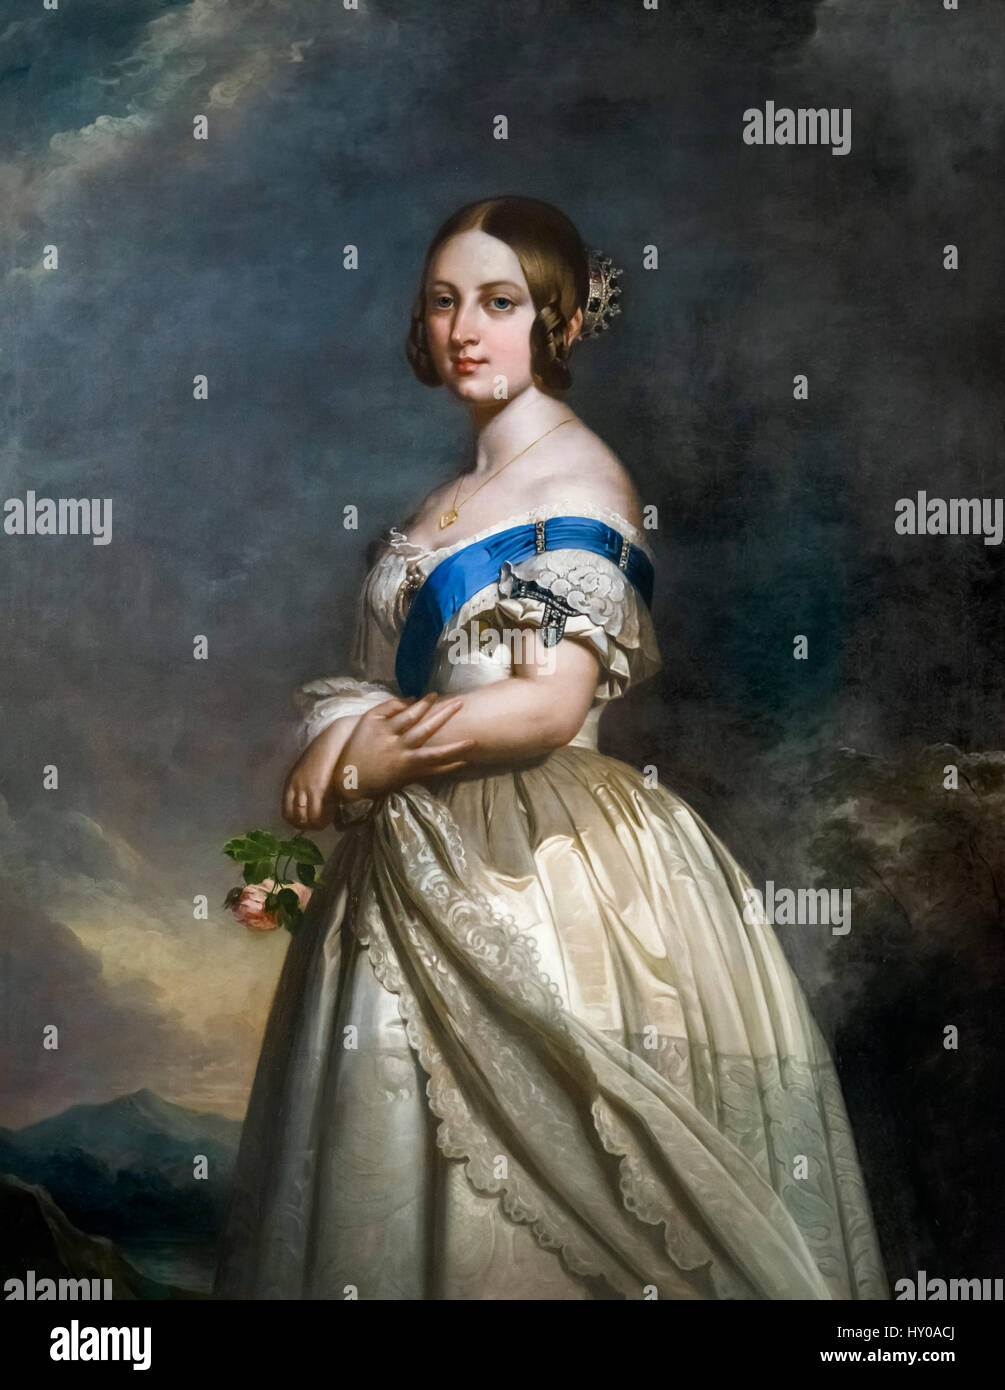 Queen Victoria of England as a young woman. Portrait by Hermann Winterhalter after an original by Franz Xaver Winterhalter, - Stock Image